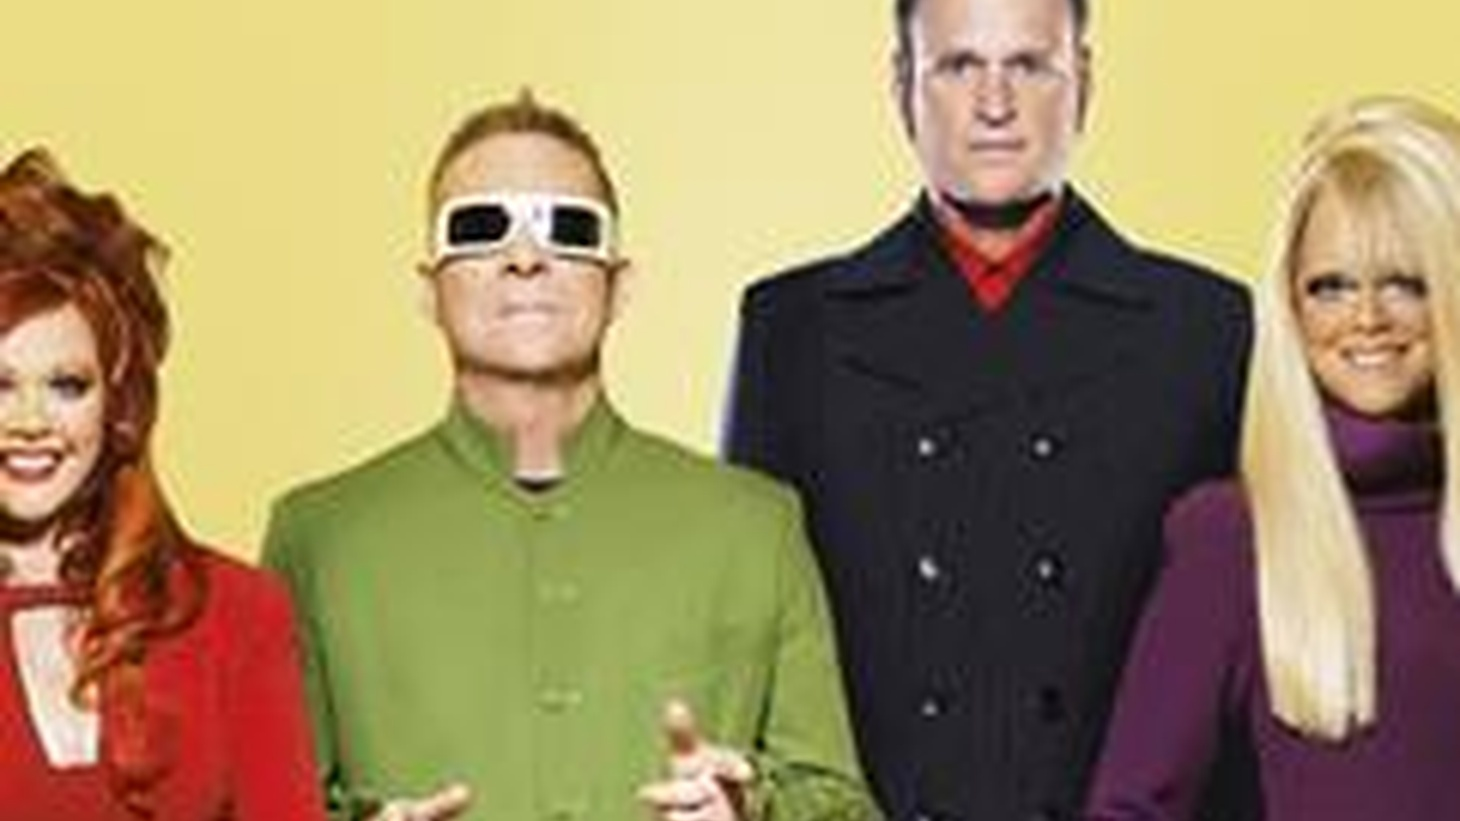 Gurus of dance-rock, The B-52s showcase songs new and old for Morning Becomes Eclectic at 11:15am.